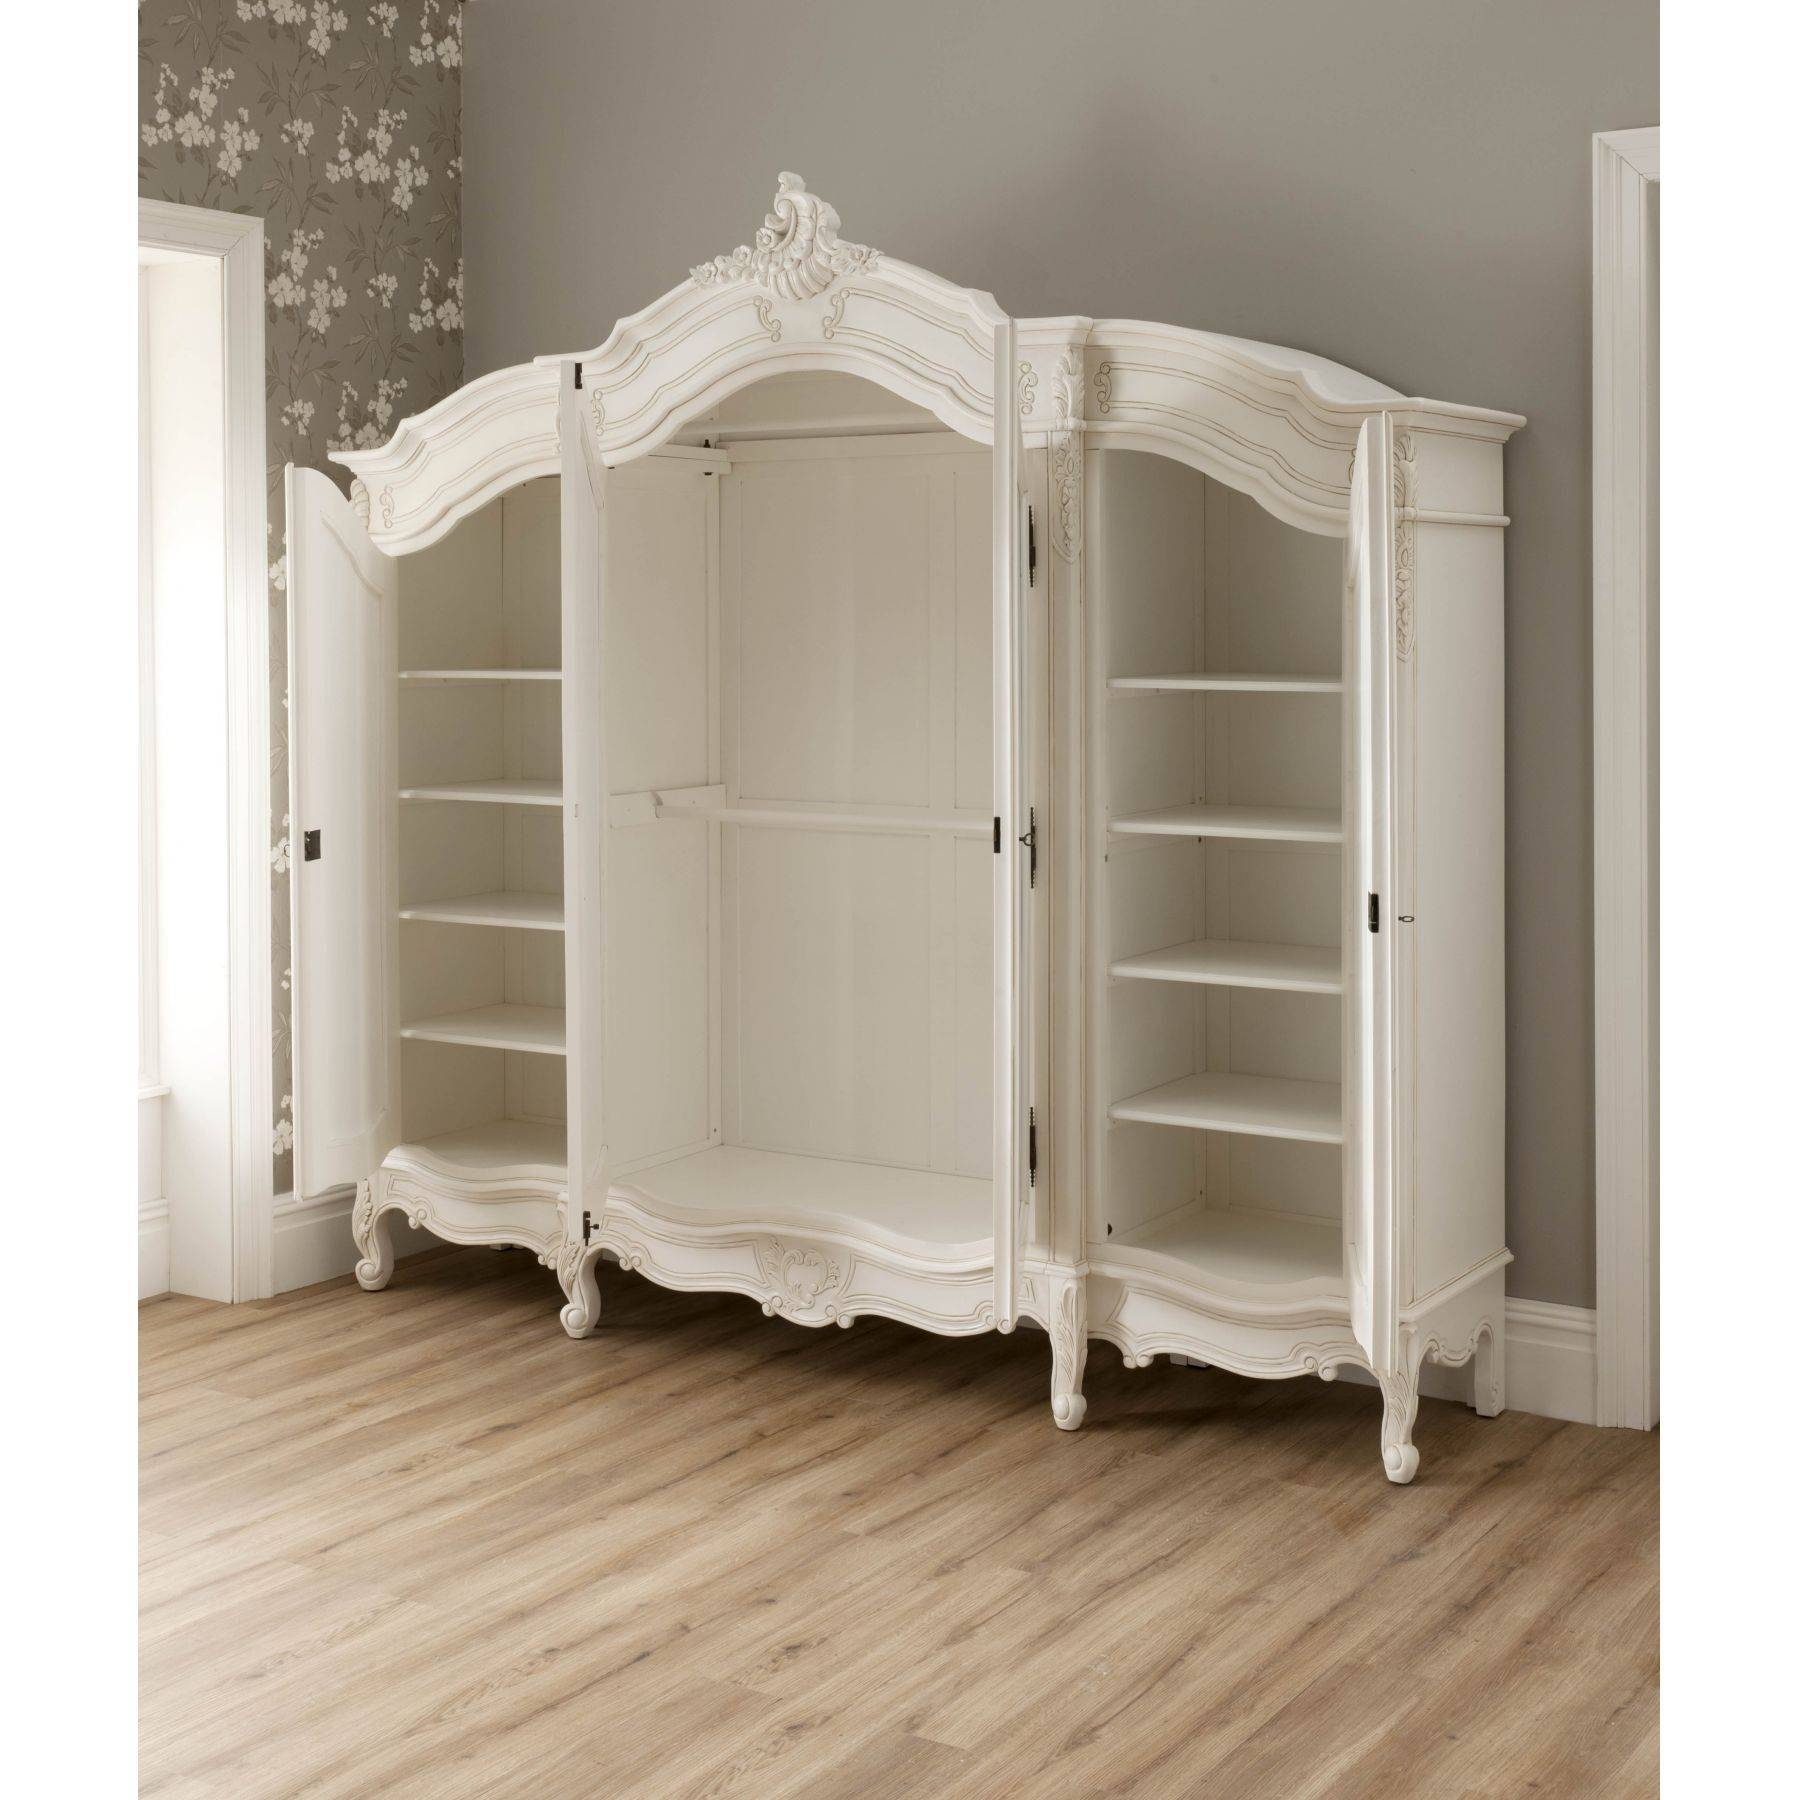 La Rochelle Antique French Wardrobe Working Well Alongside Our within White French Style Wardrobes (Image 9 of 15)